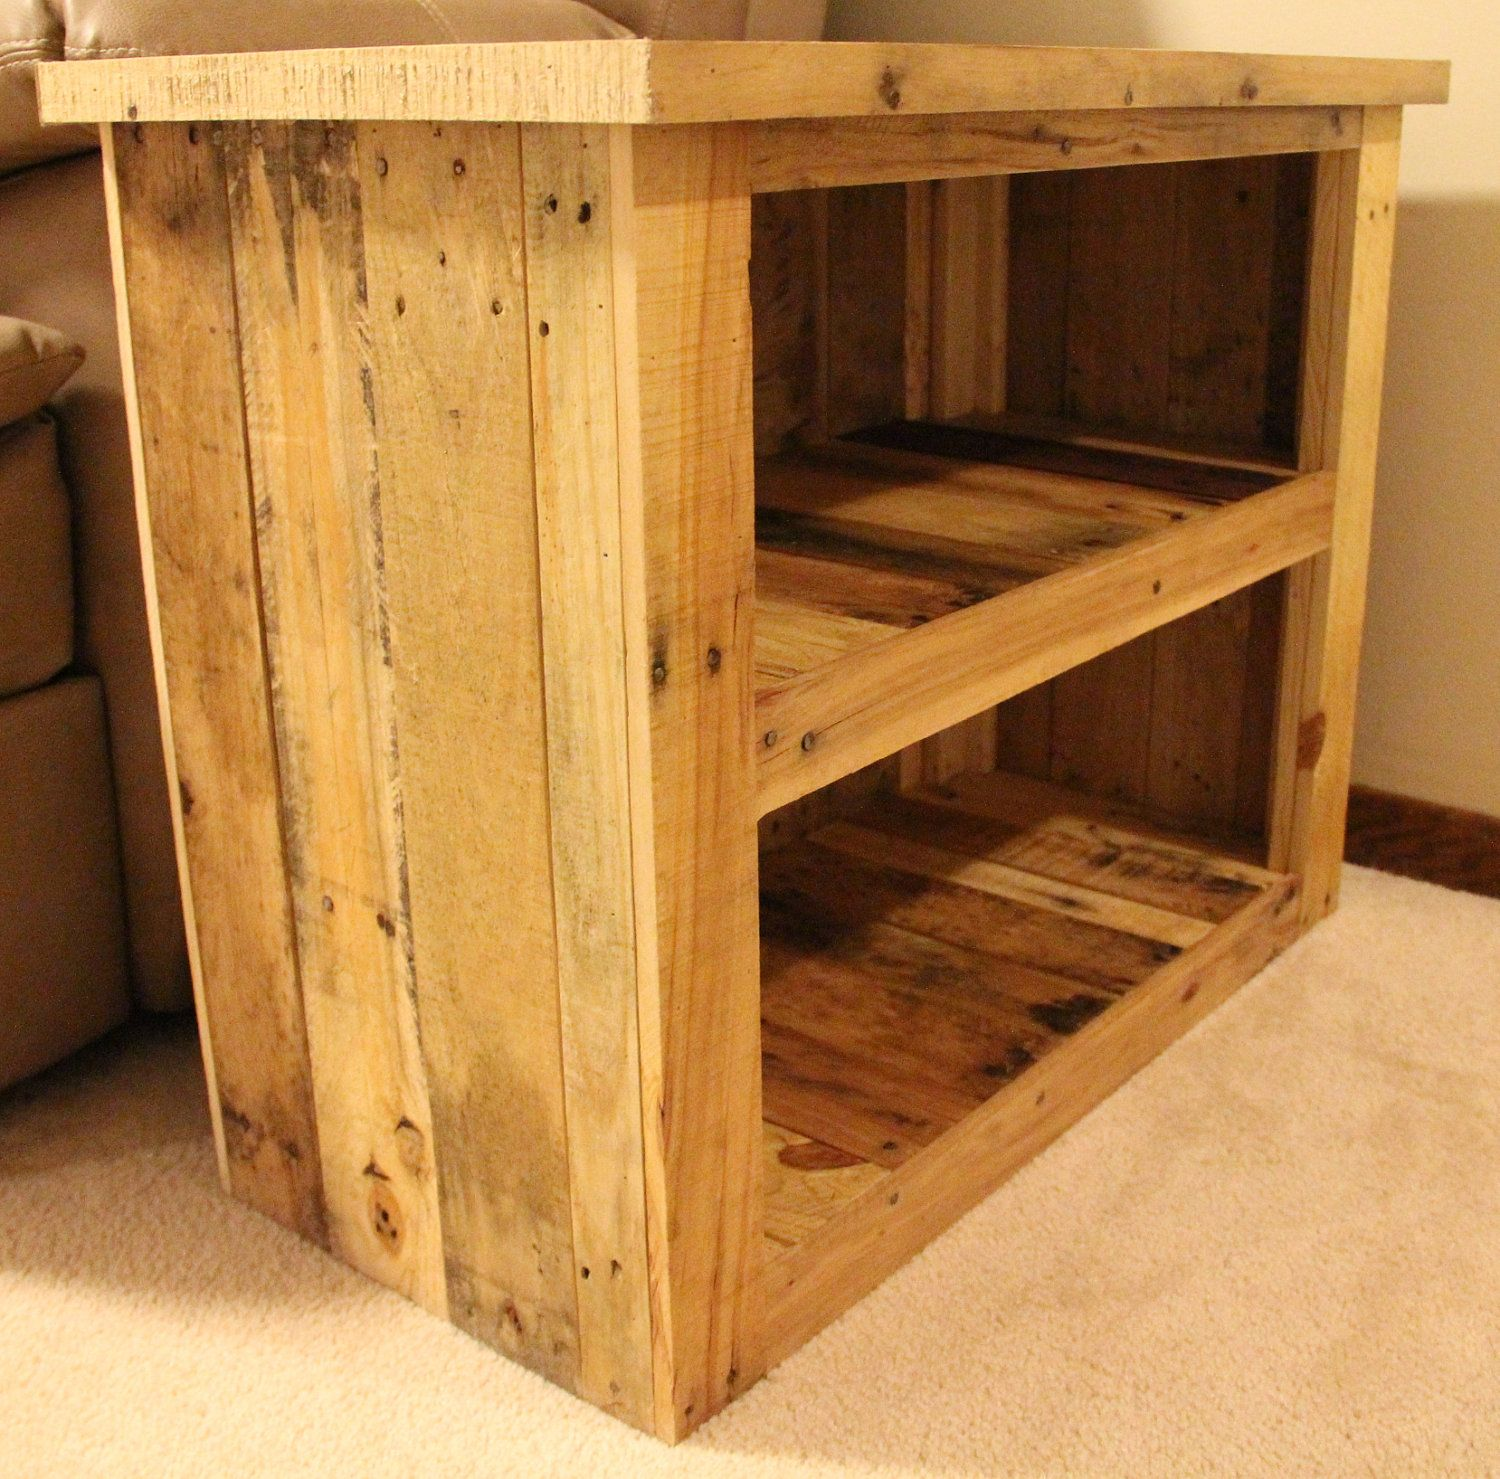 Reclaimed Pallet Wood Furniture - Side Table Home Ideas